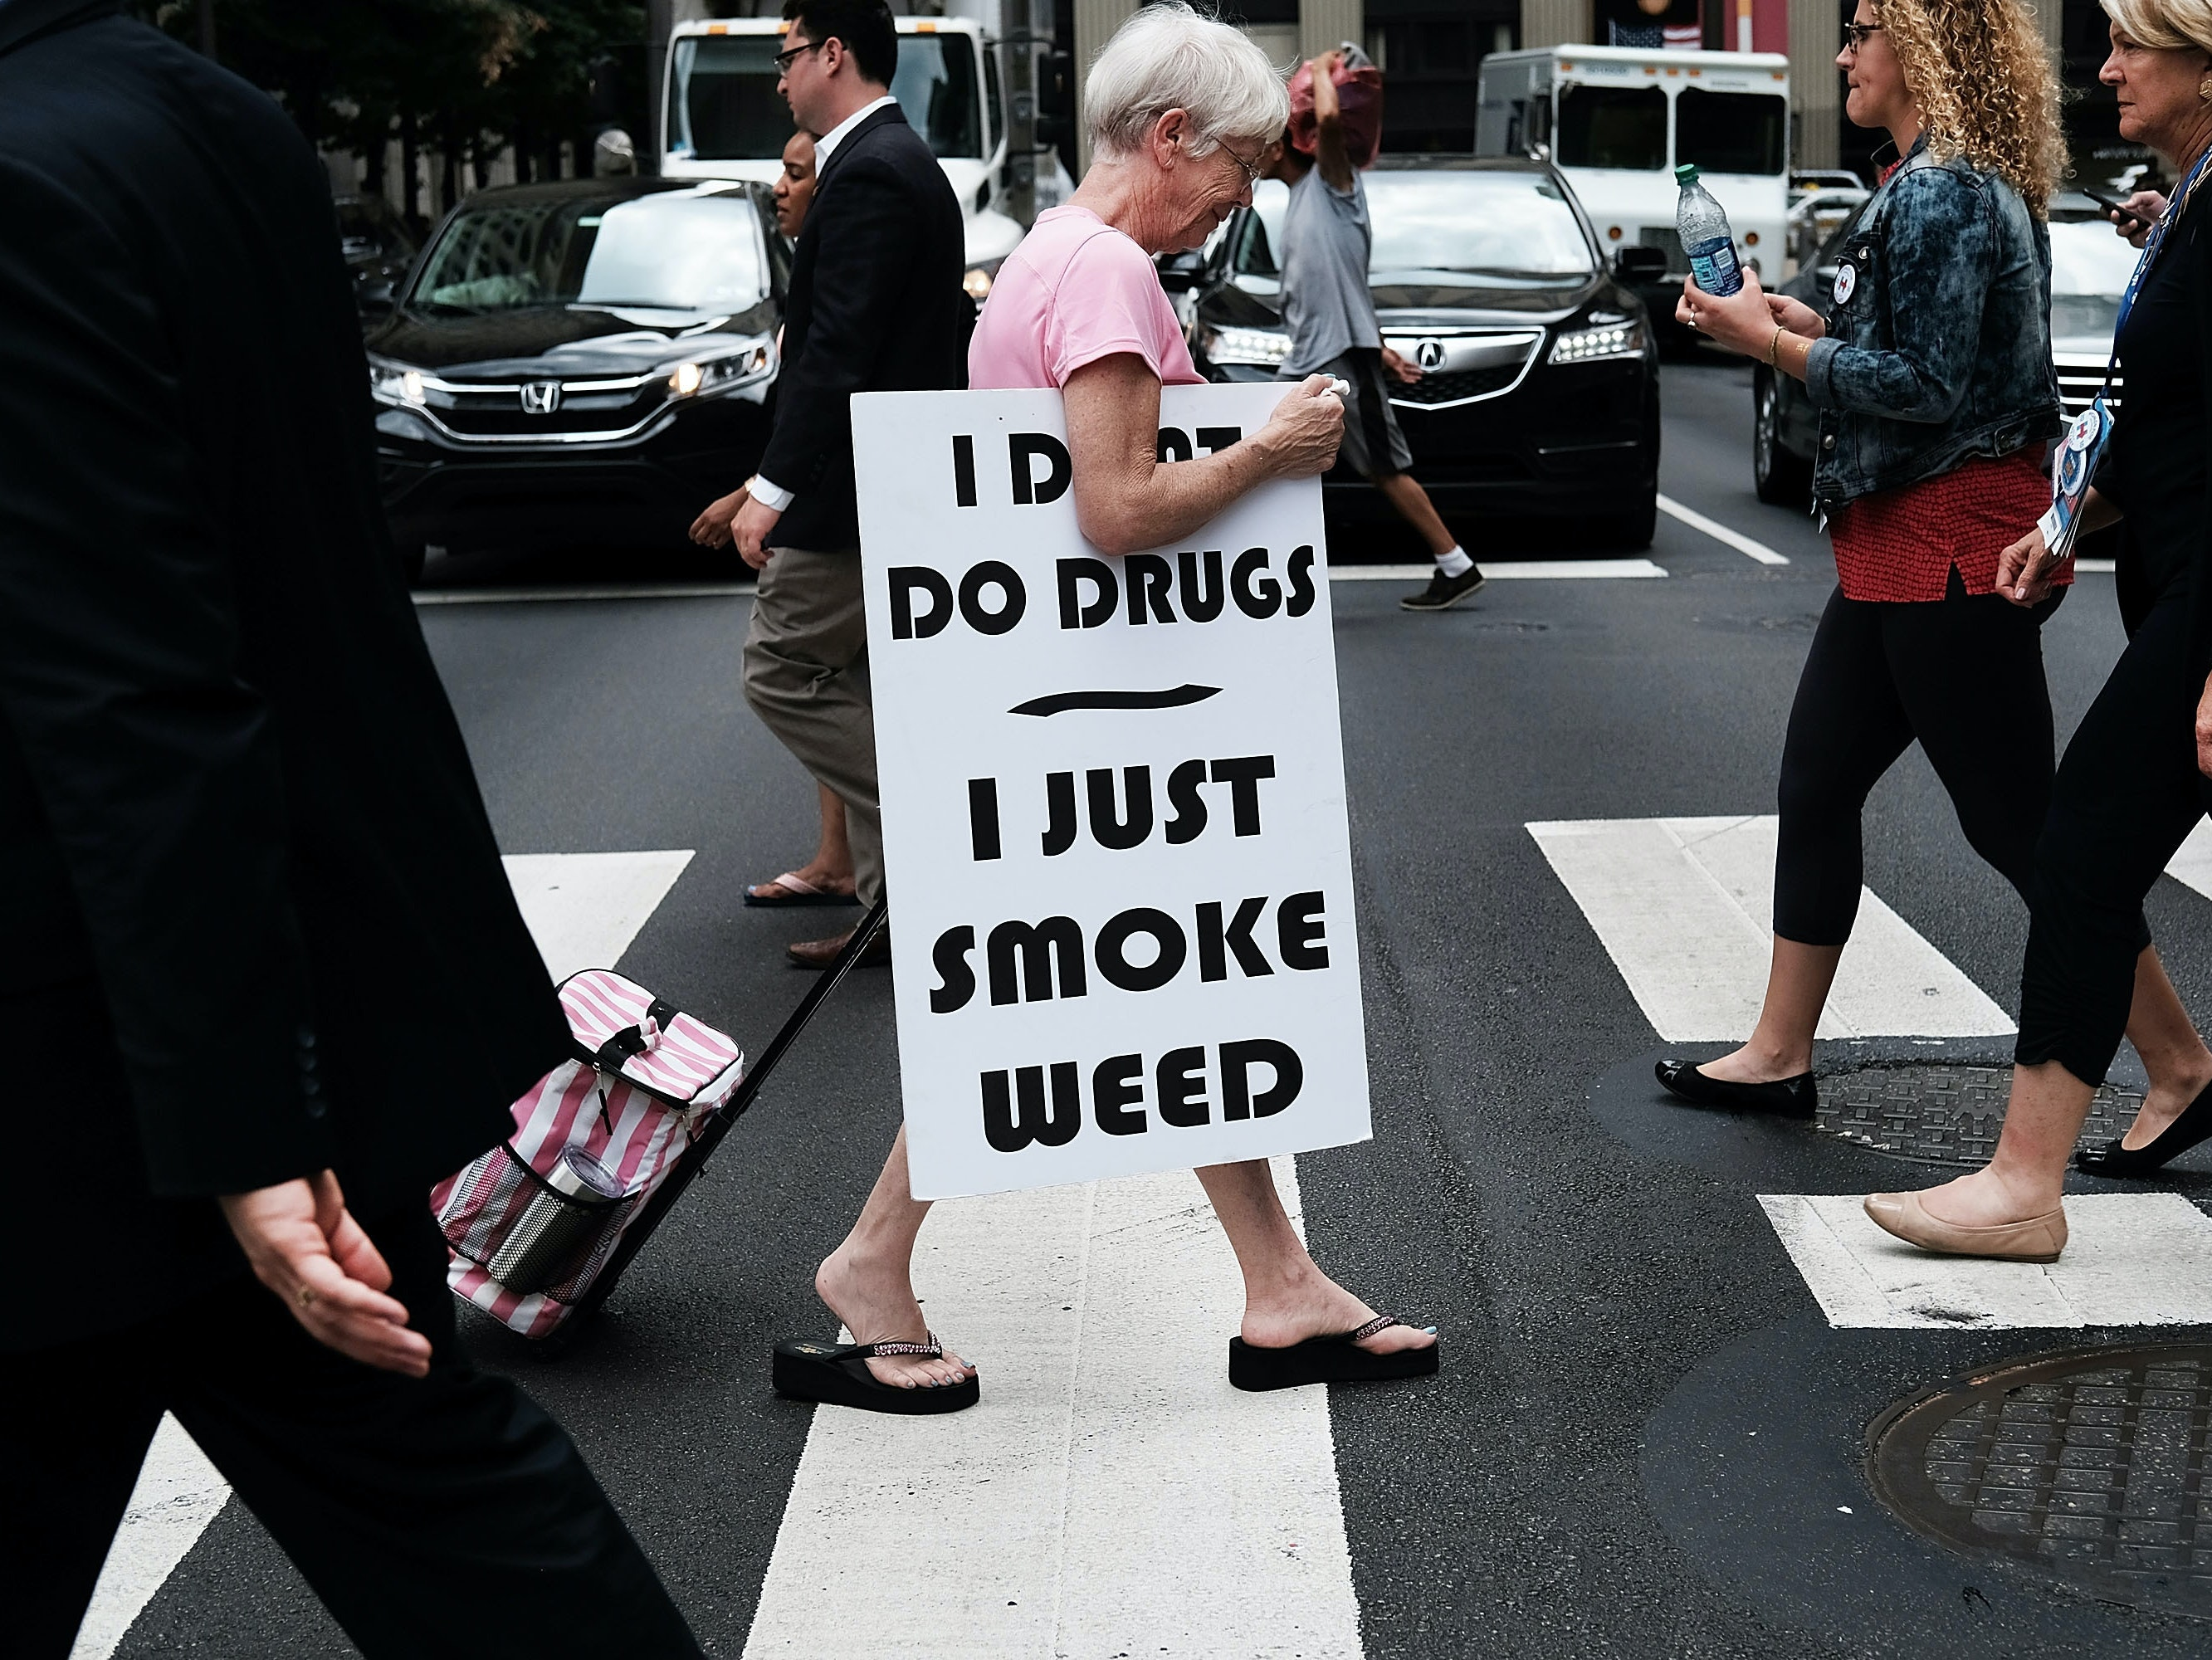 PHILADELPHIA, PA - JULY 28: A woman walks with a sign supporting legalizing marijuana during the Democratic National Convention (DNC) on July 28, 2016 in Philadelphia, Pennsylvania. The convention officially began on Monday and has attracted thousands of protesters, members of the media and Democratic delegates to the City of Brotherly Love.  (Photo by Spencer Platt/Getty Images)